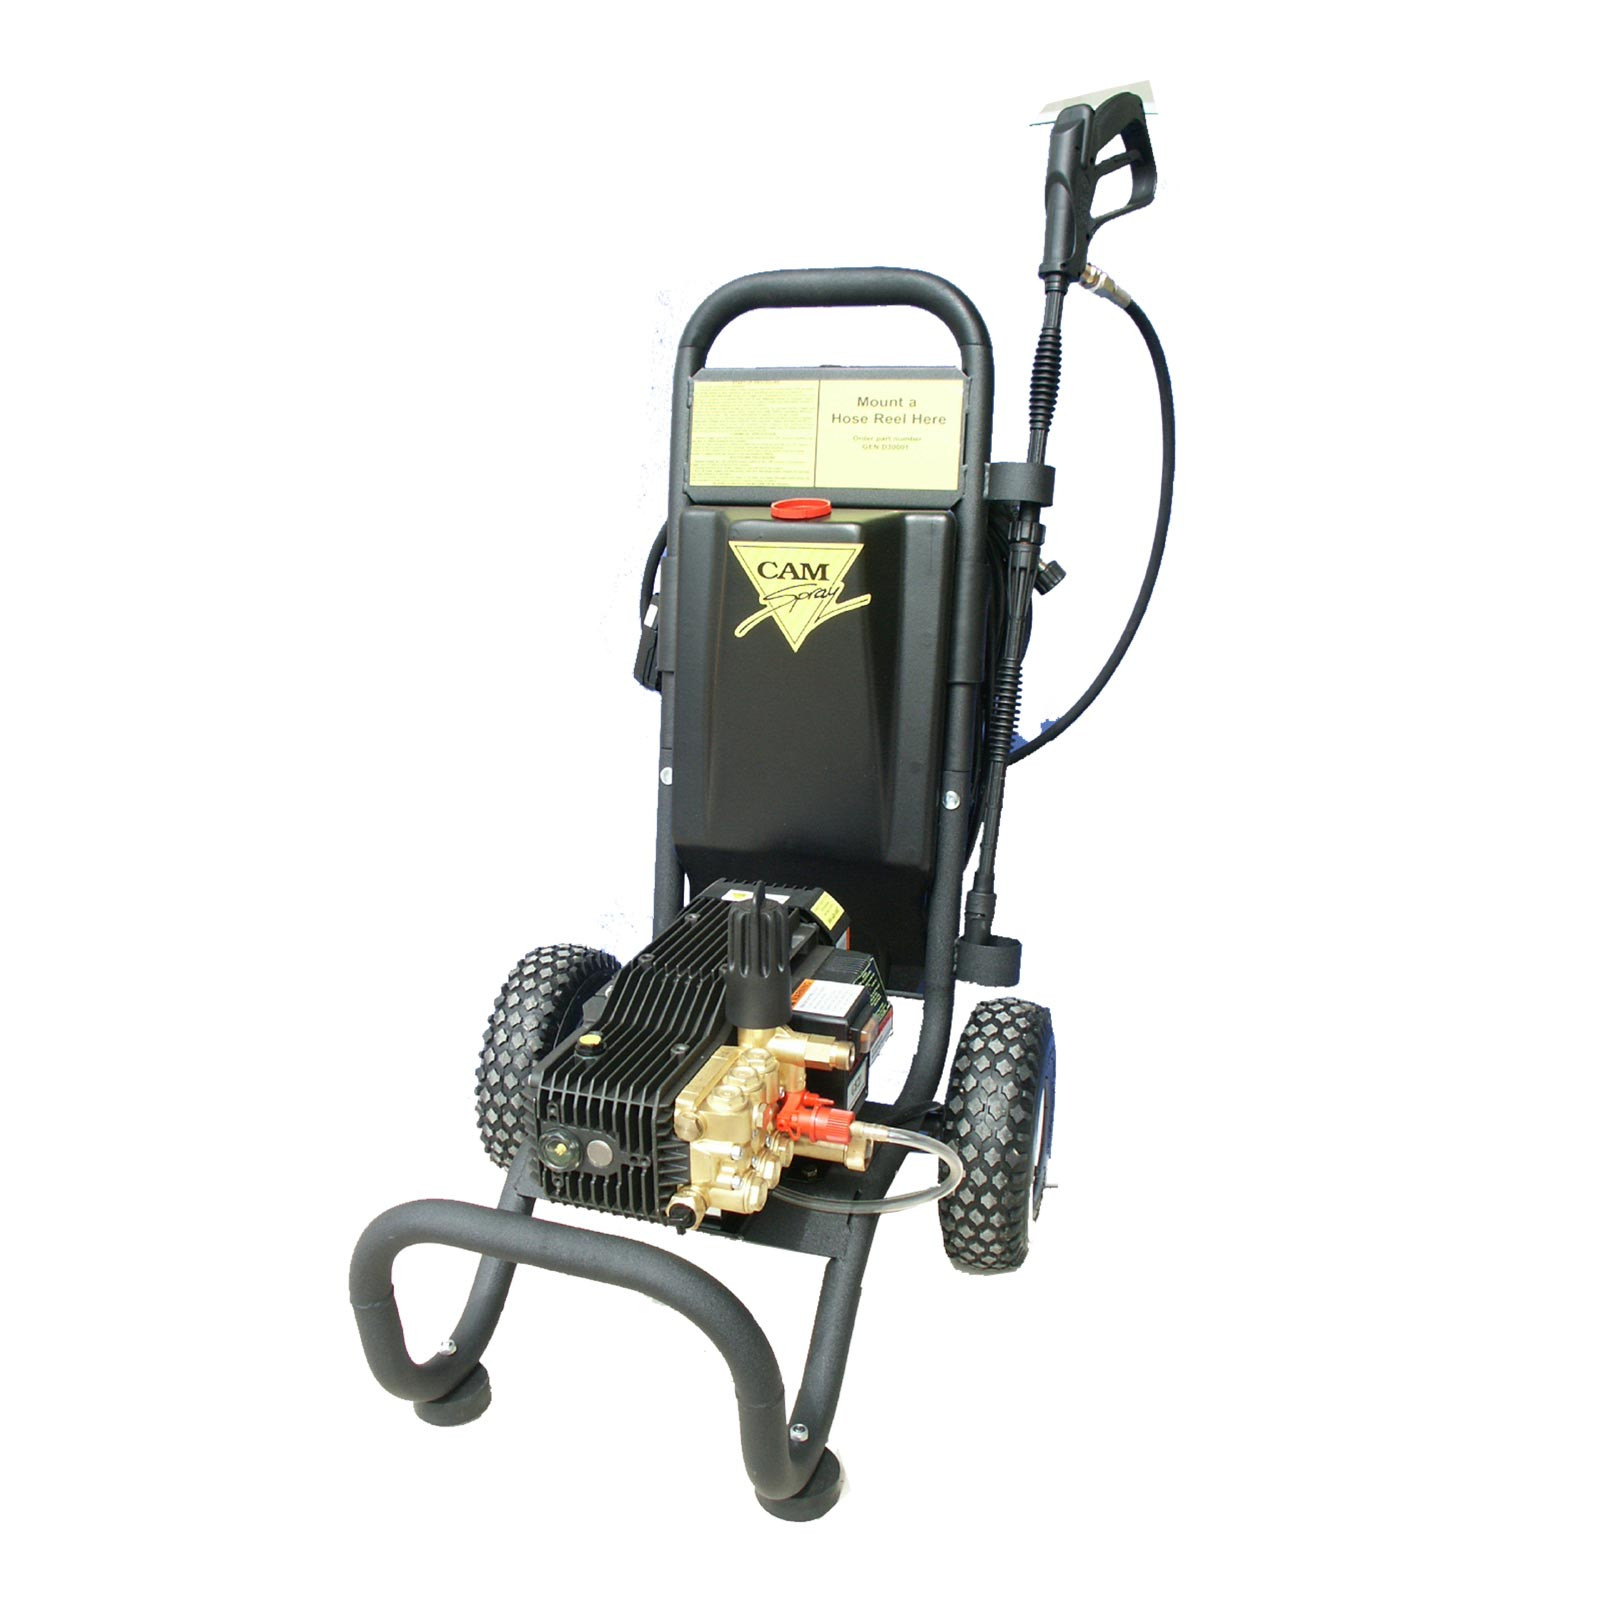 Cam Spray 120 Volt Cart Mounted Electric Pressure Washer